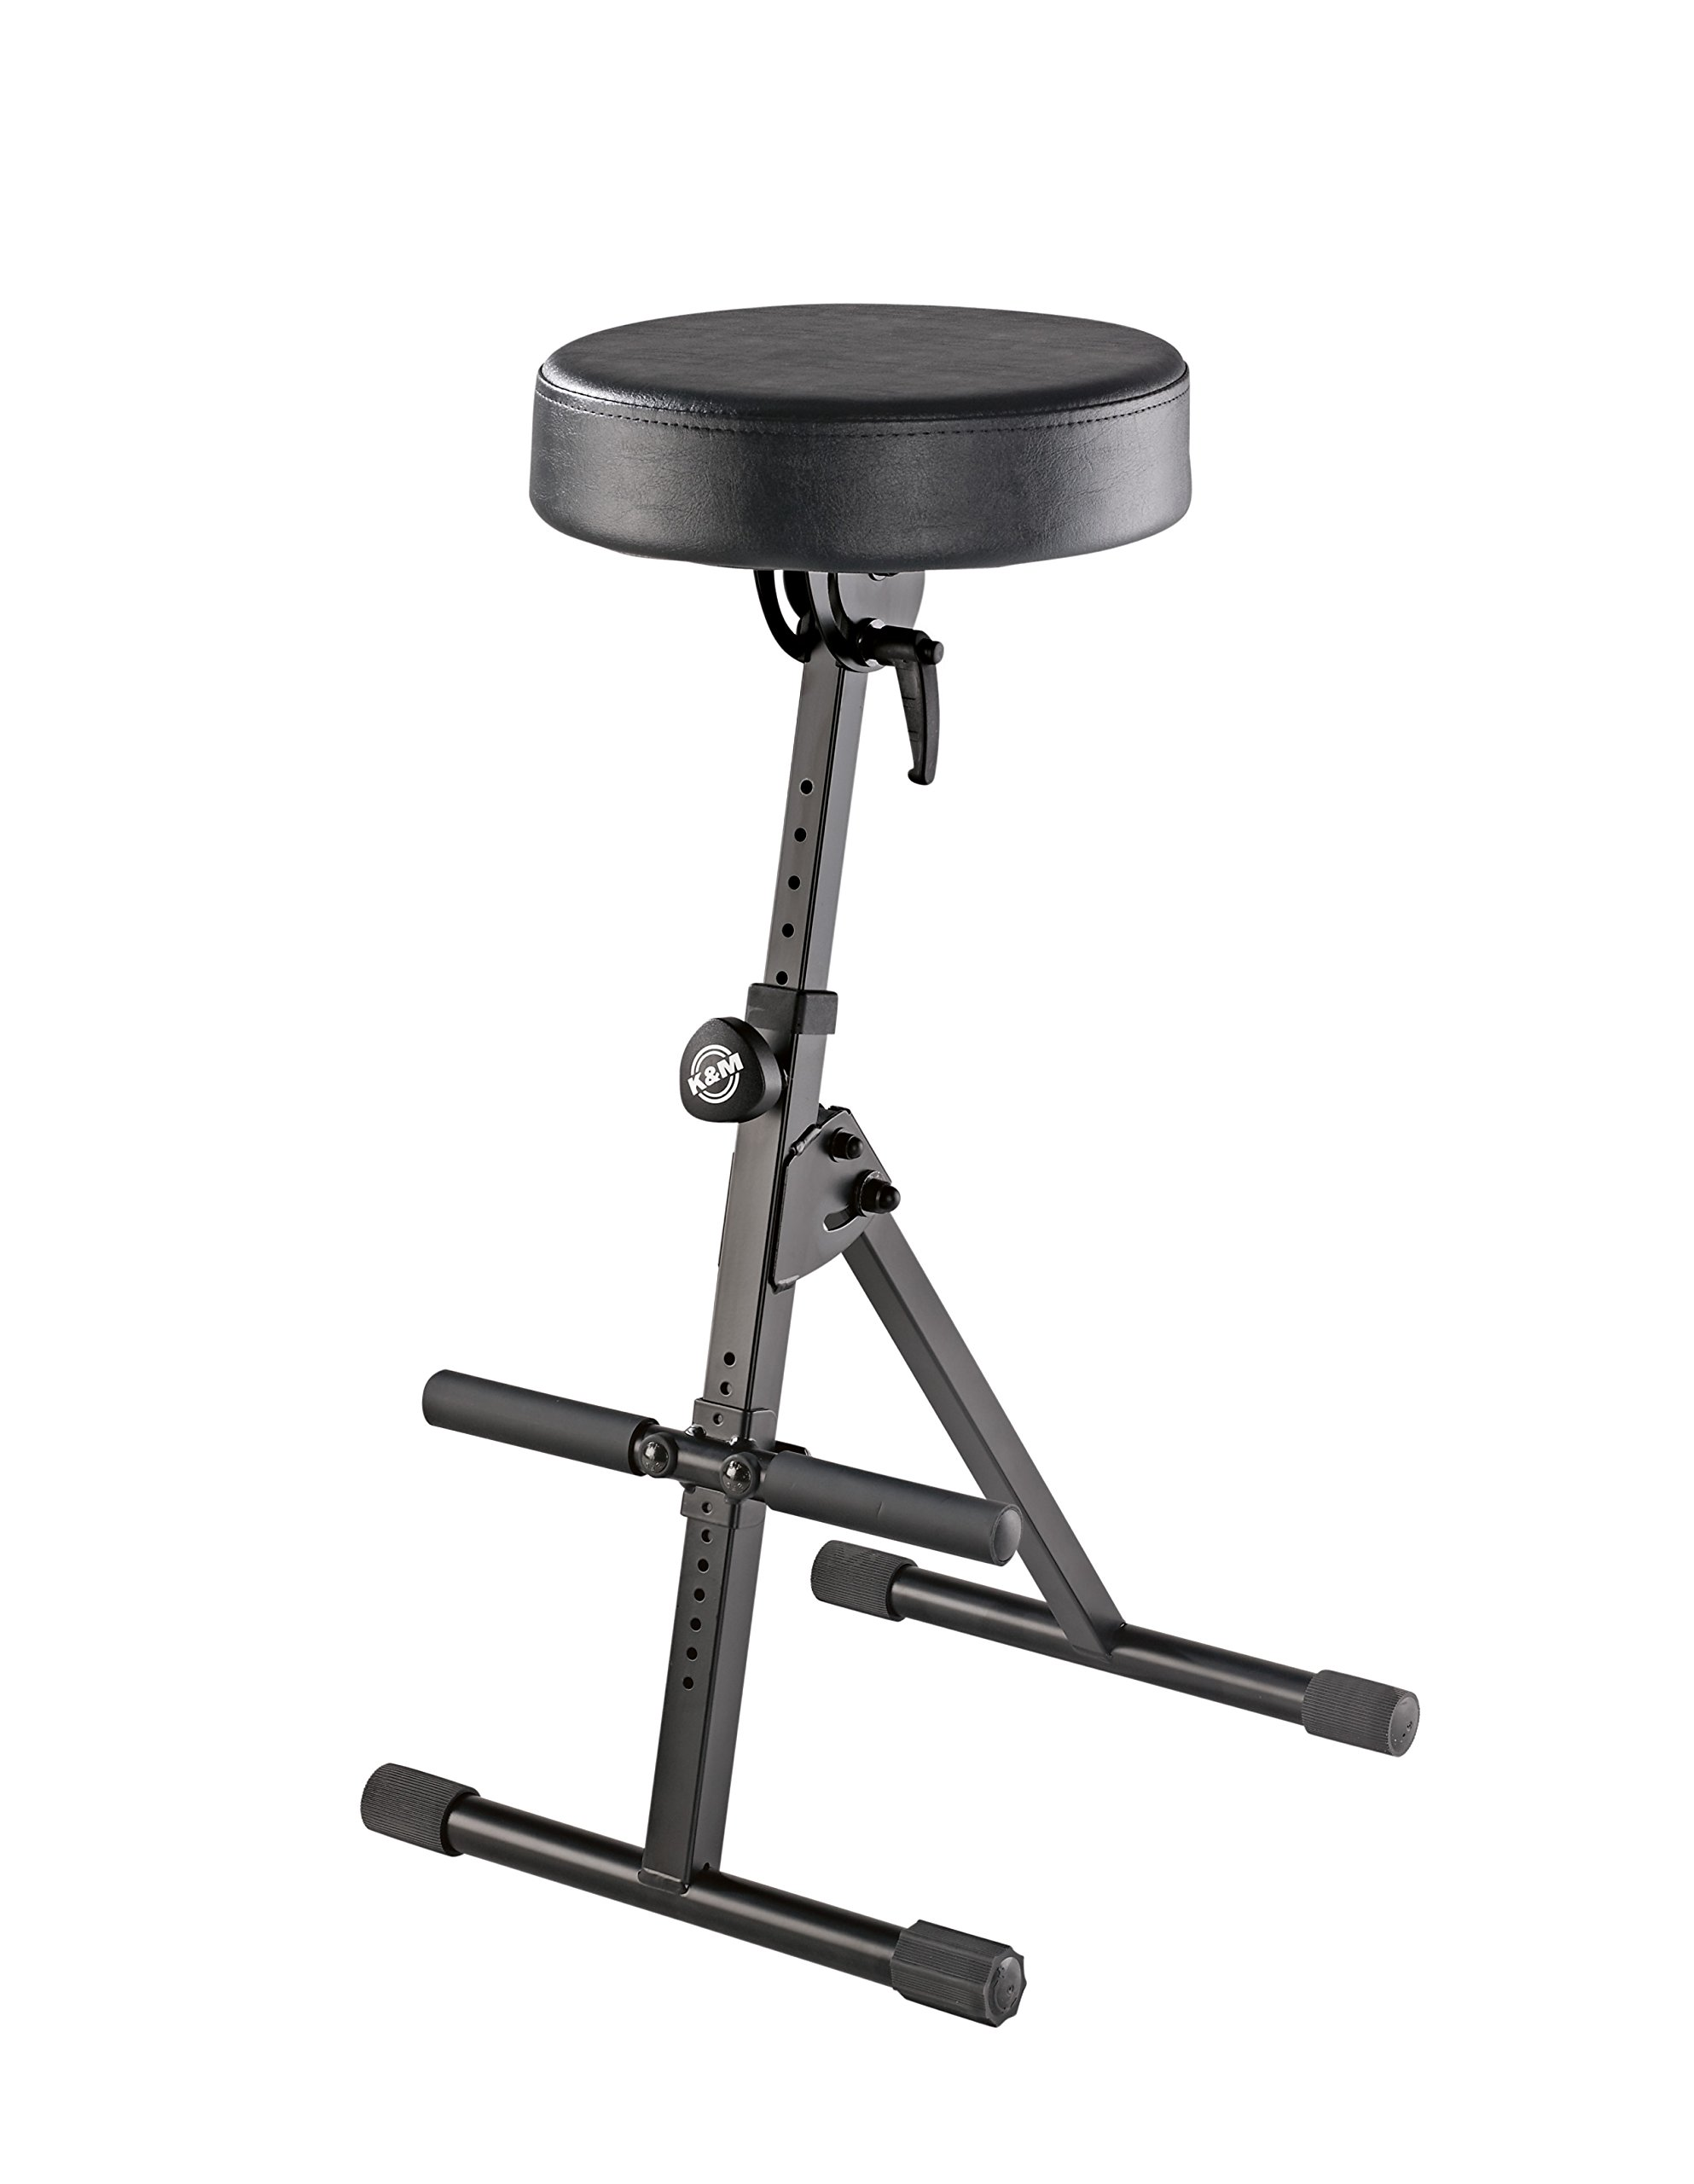 K & M Stands K & M Stool w/foot rest, black Music Stand 14060.000.55 by K&M Stands (Image #1)